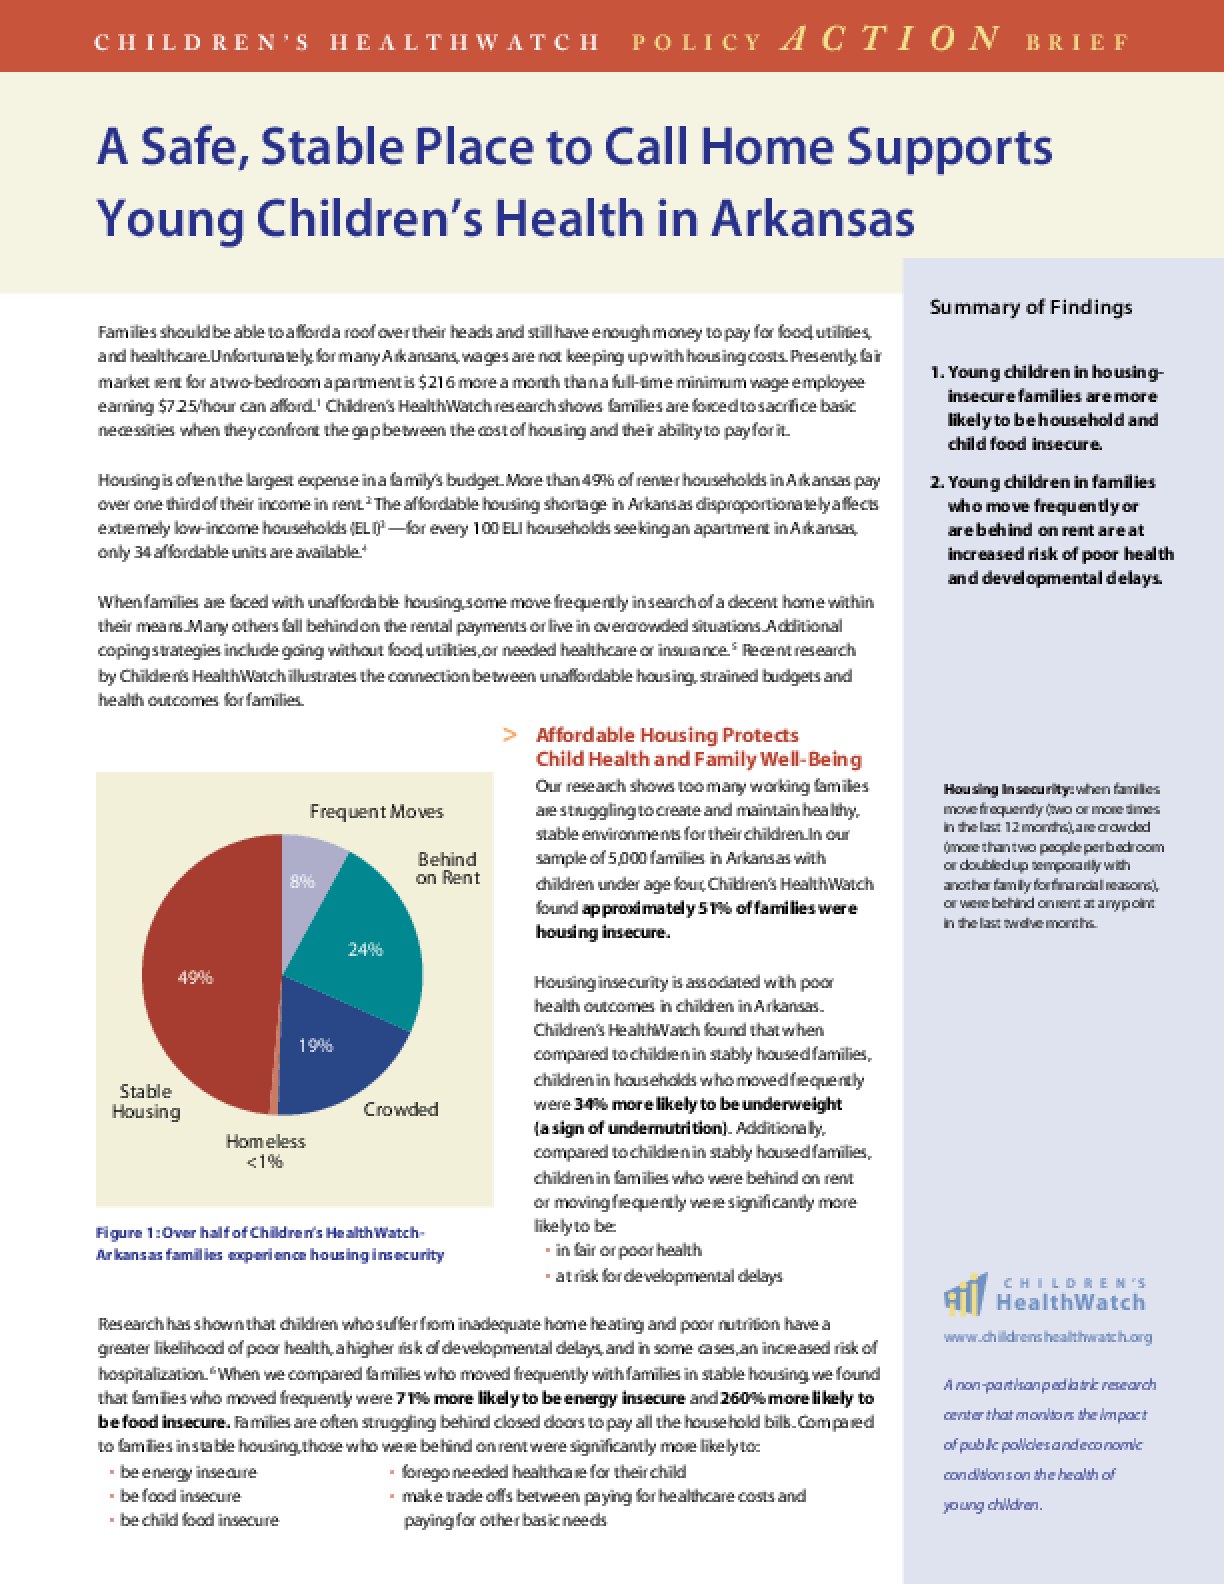 A Safe, Stable Place to Call Home Supports Young Children's Health in Arkansas